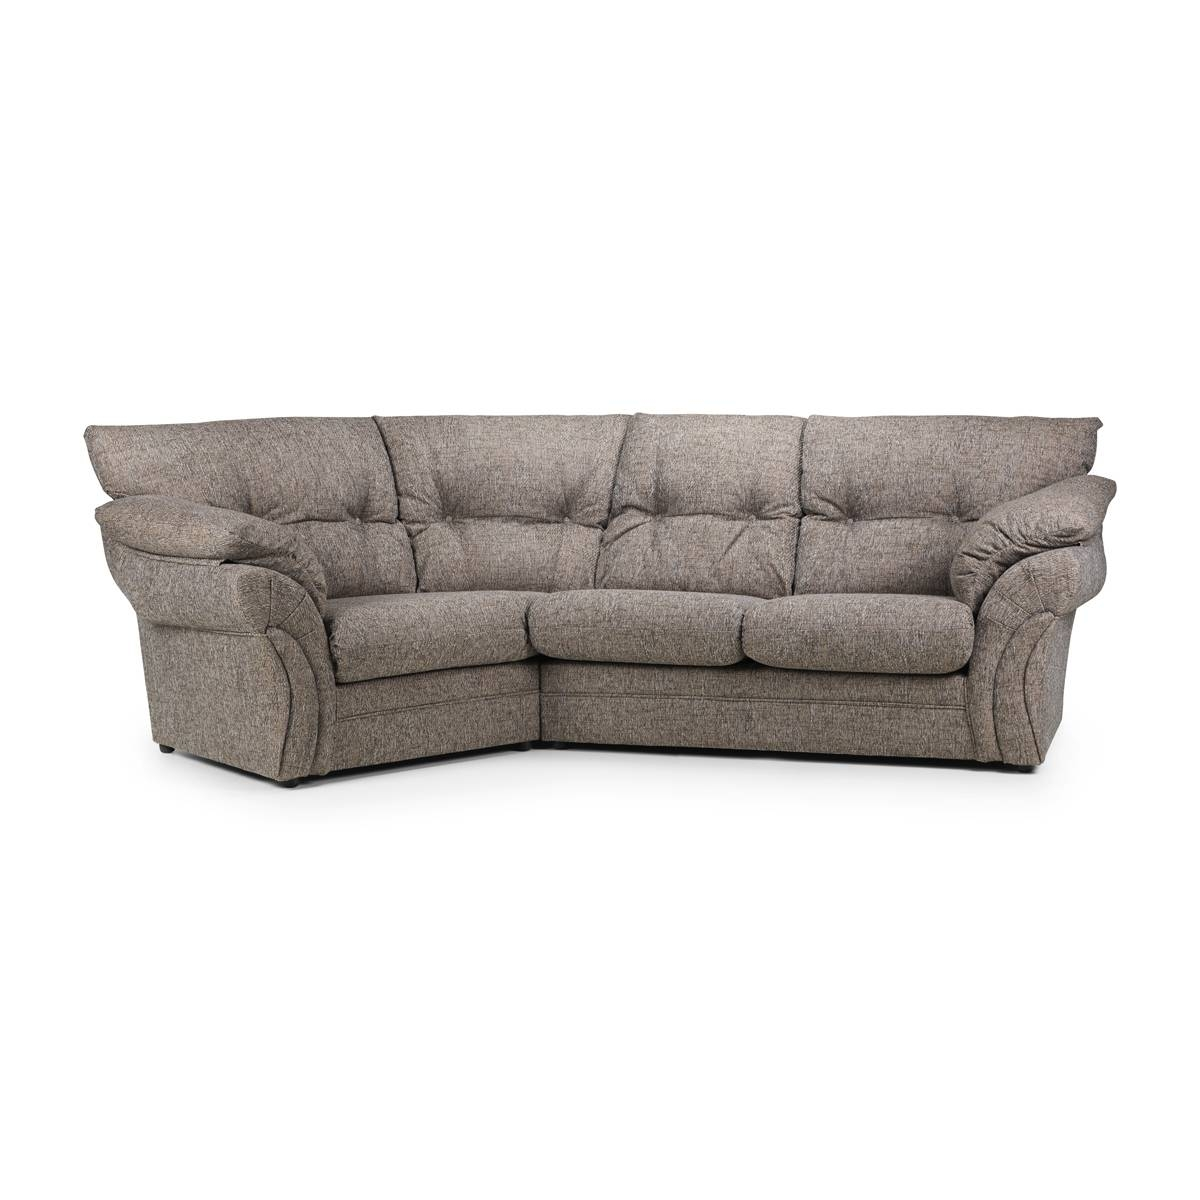 Fl Series - Snuggle Sofa Lh Only £999 At Sofa Success in Snuggle Sofas (Image 13 of 30)